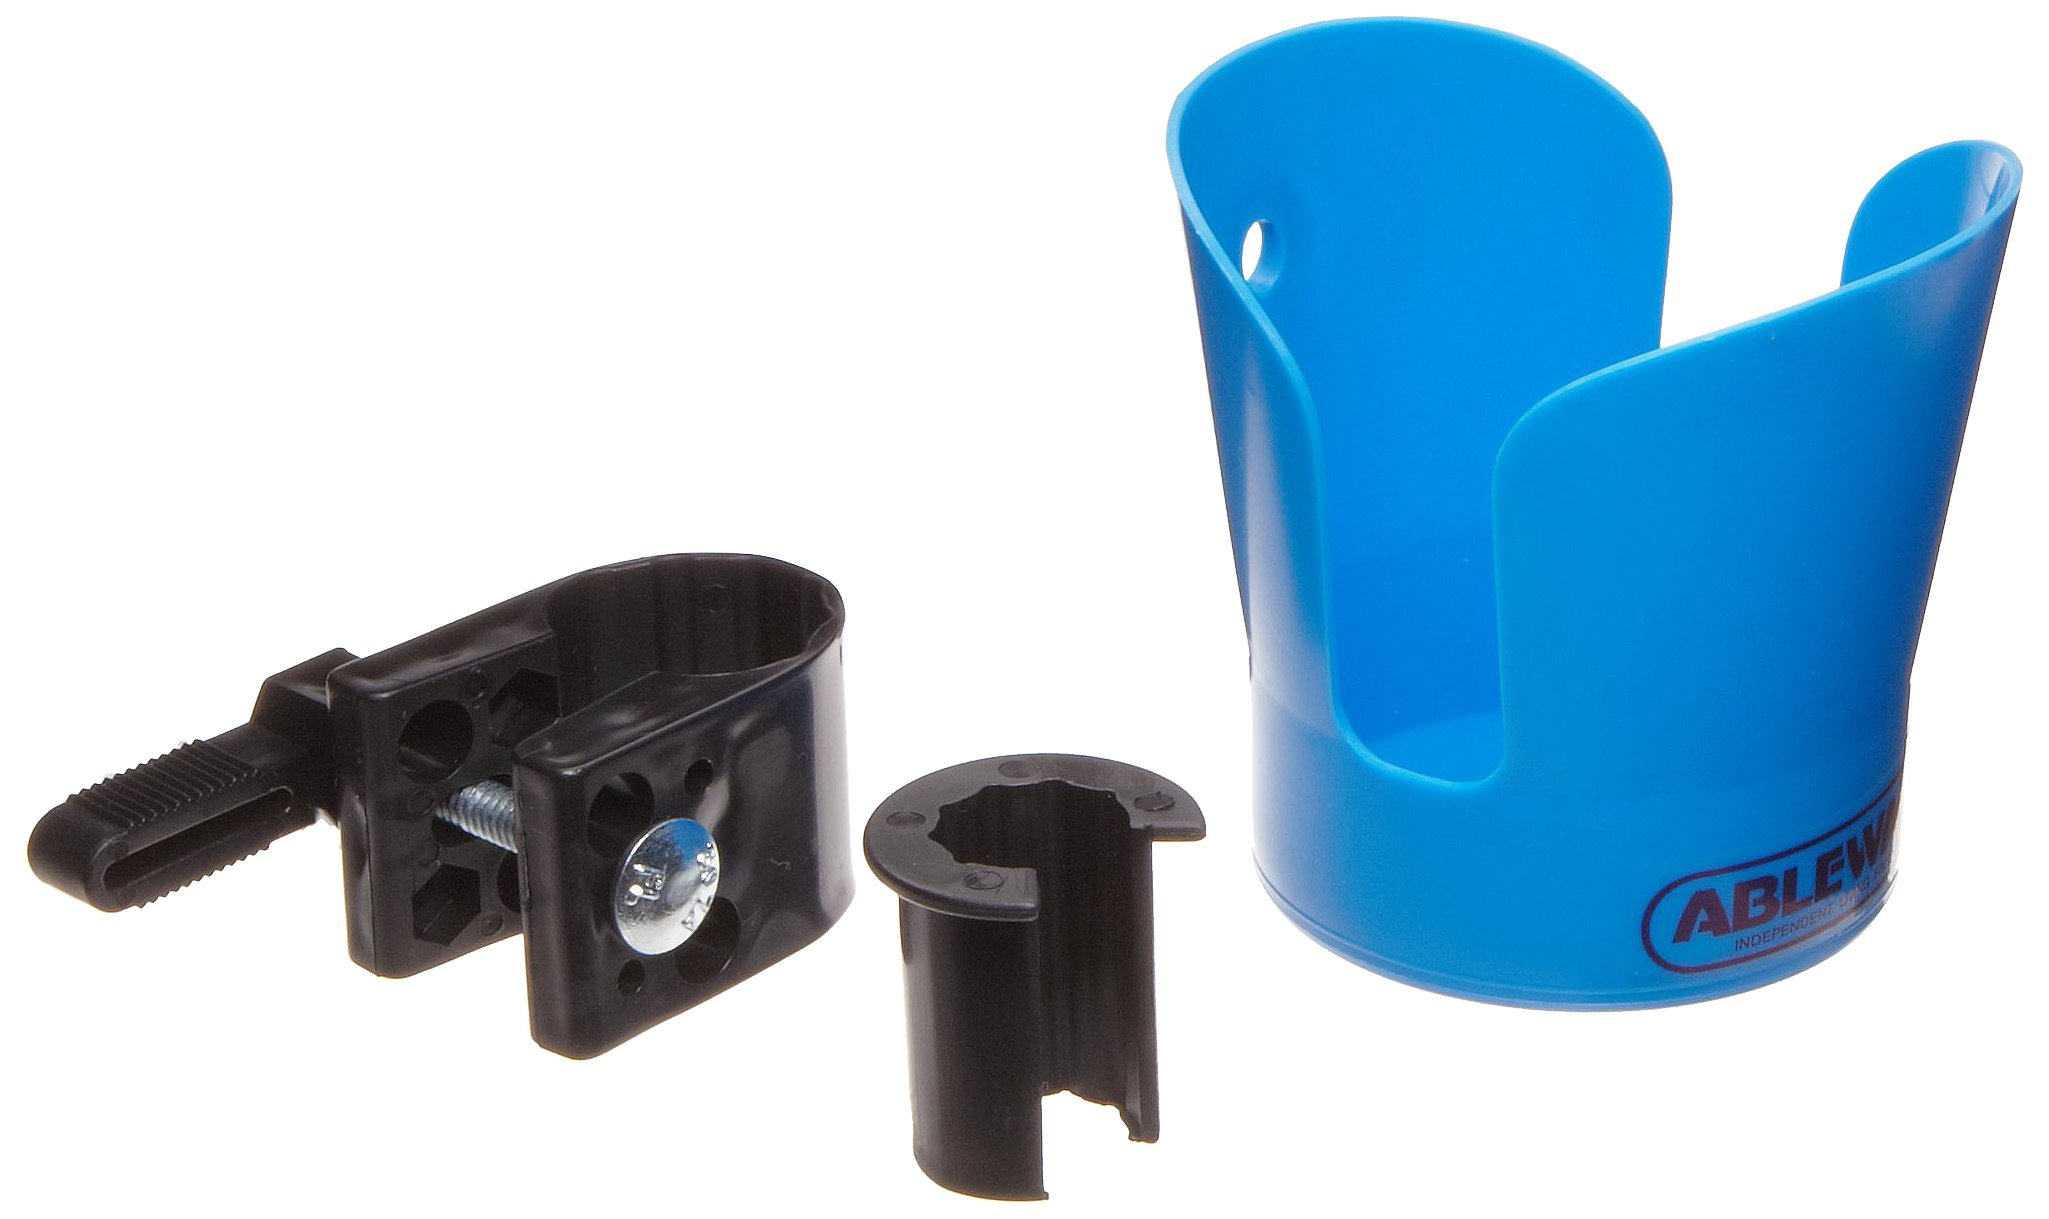 SP Ableware Wheelchair Cup Holder, Blue (706220001)